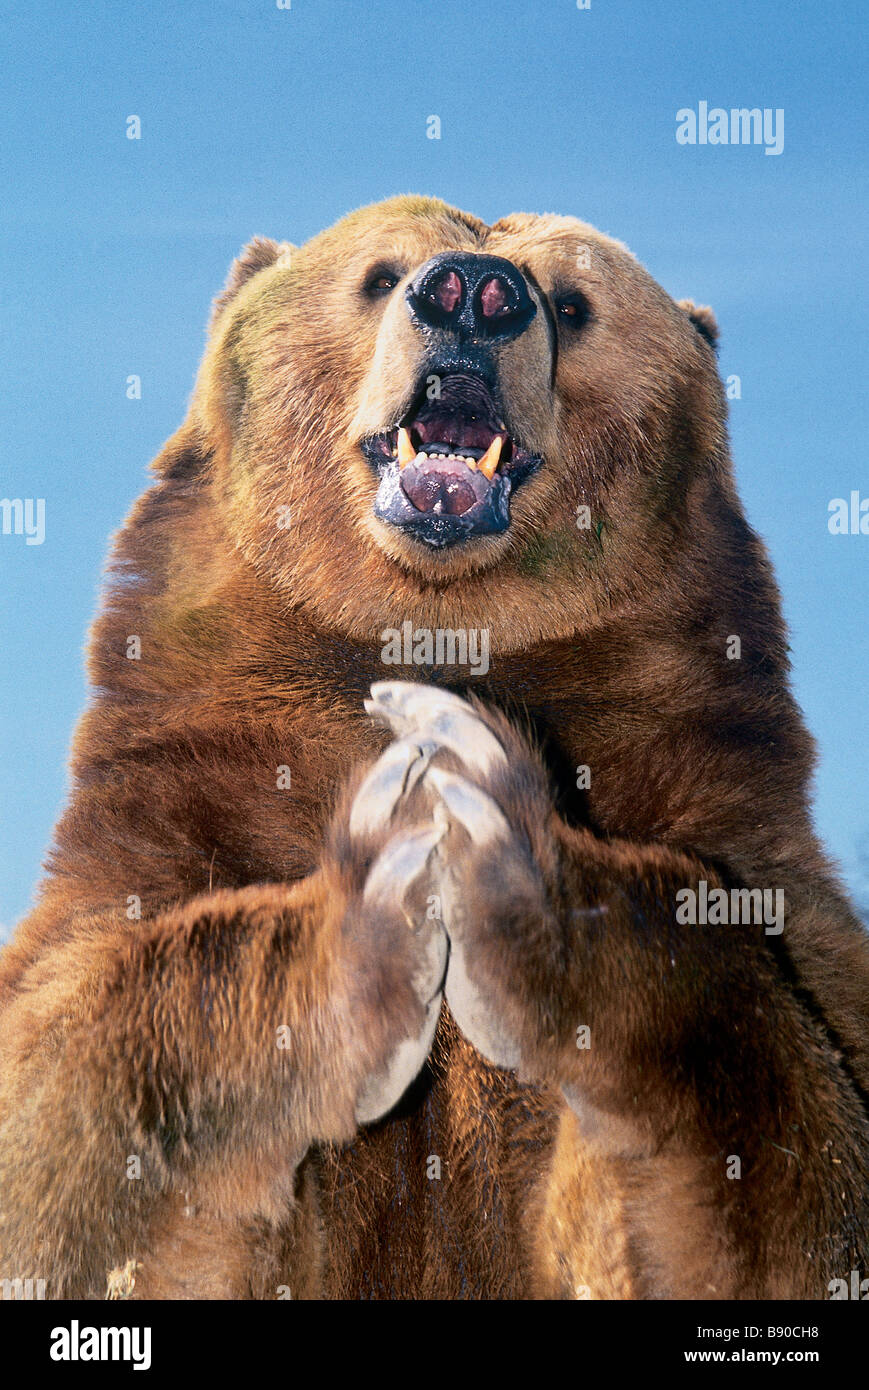 FL1156, Kitchin/Hurst; Brown Bear Praying - Stock Image